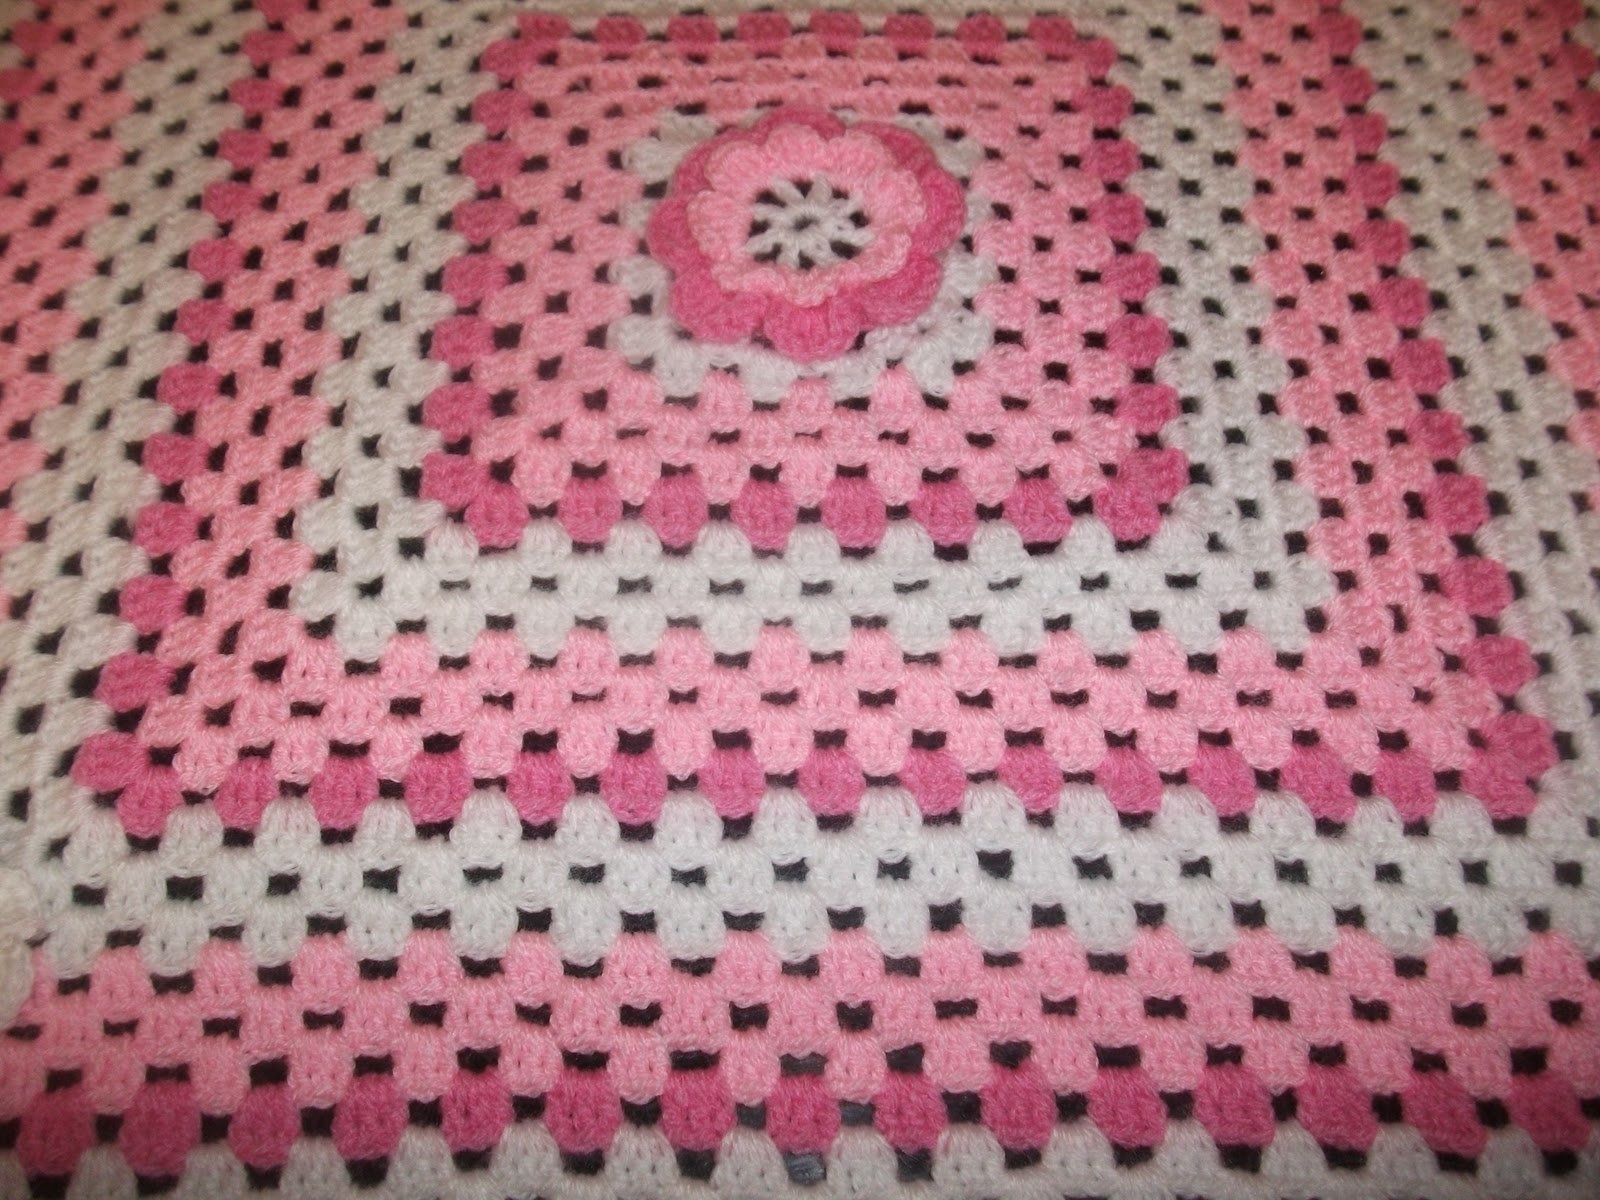 Crochet Patterns Easy Blankets : Helens Colourful Crochet Blankets: New baby girl pink crochet blanket